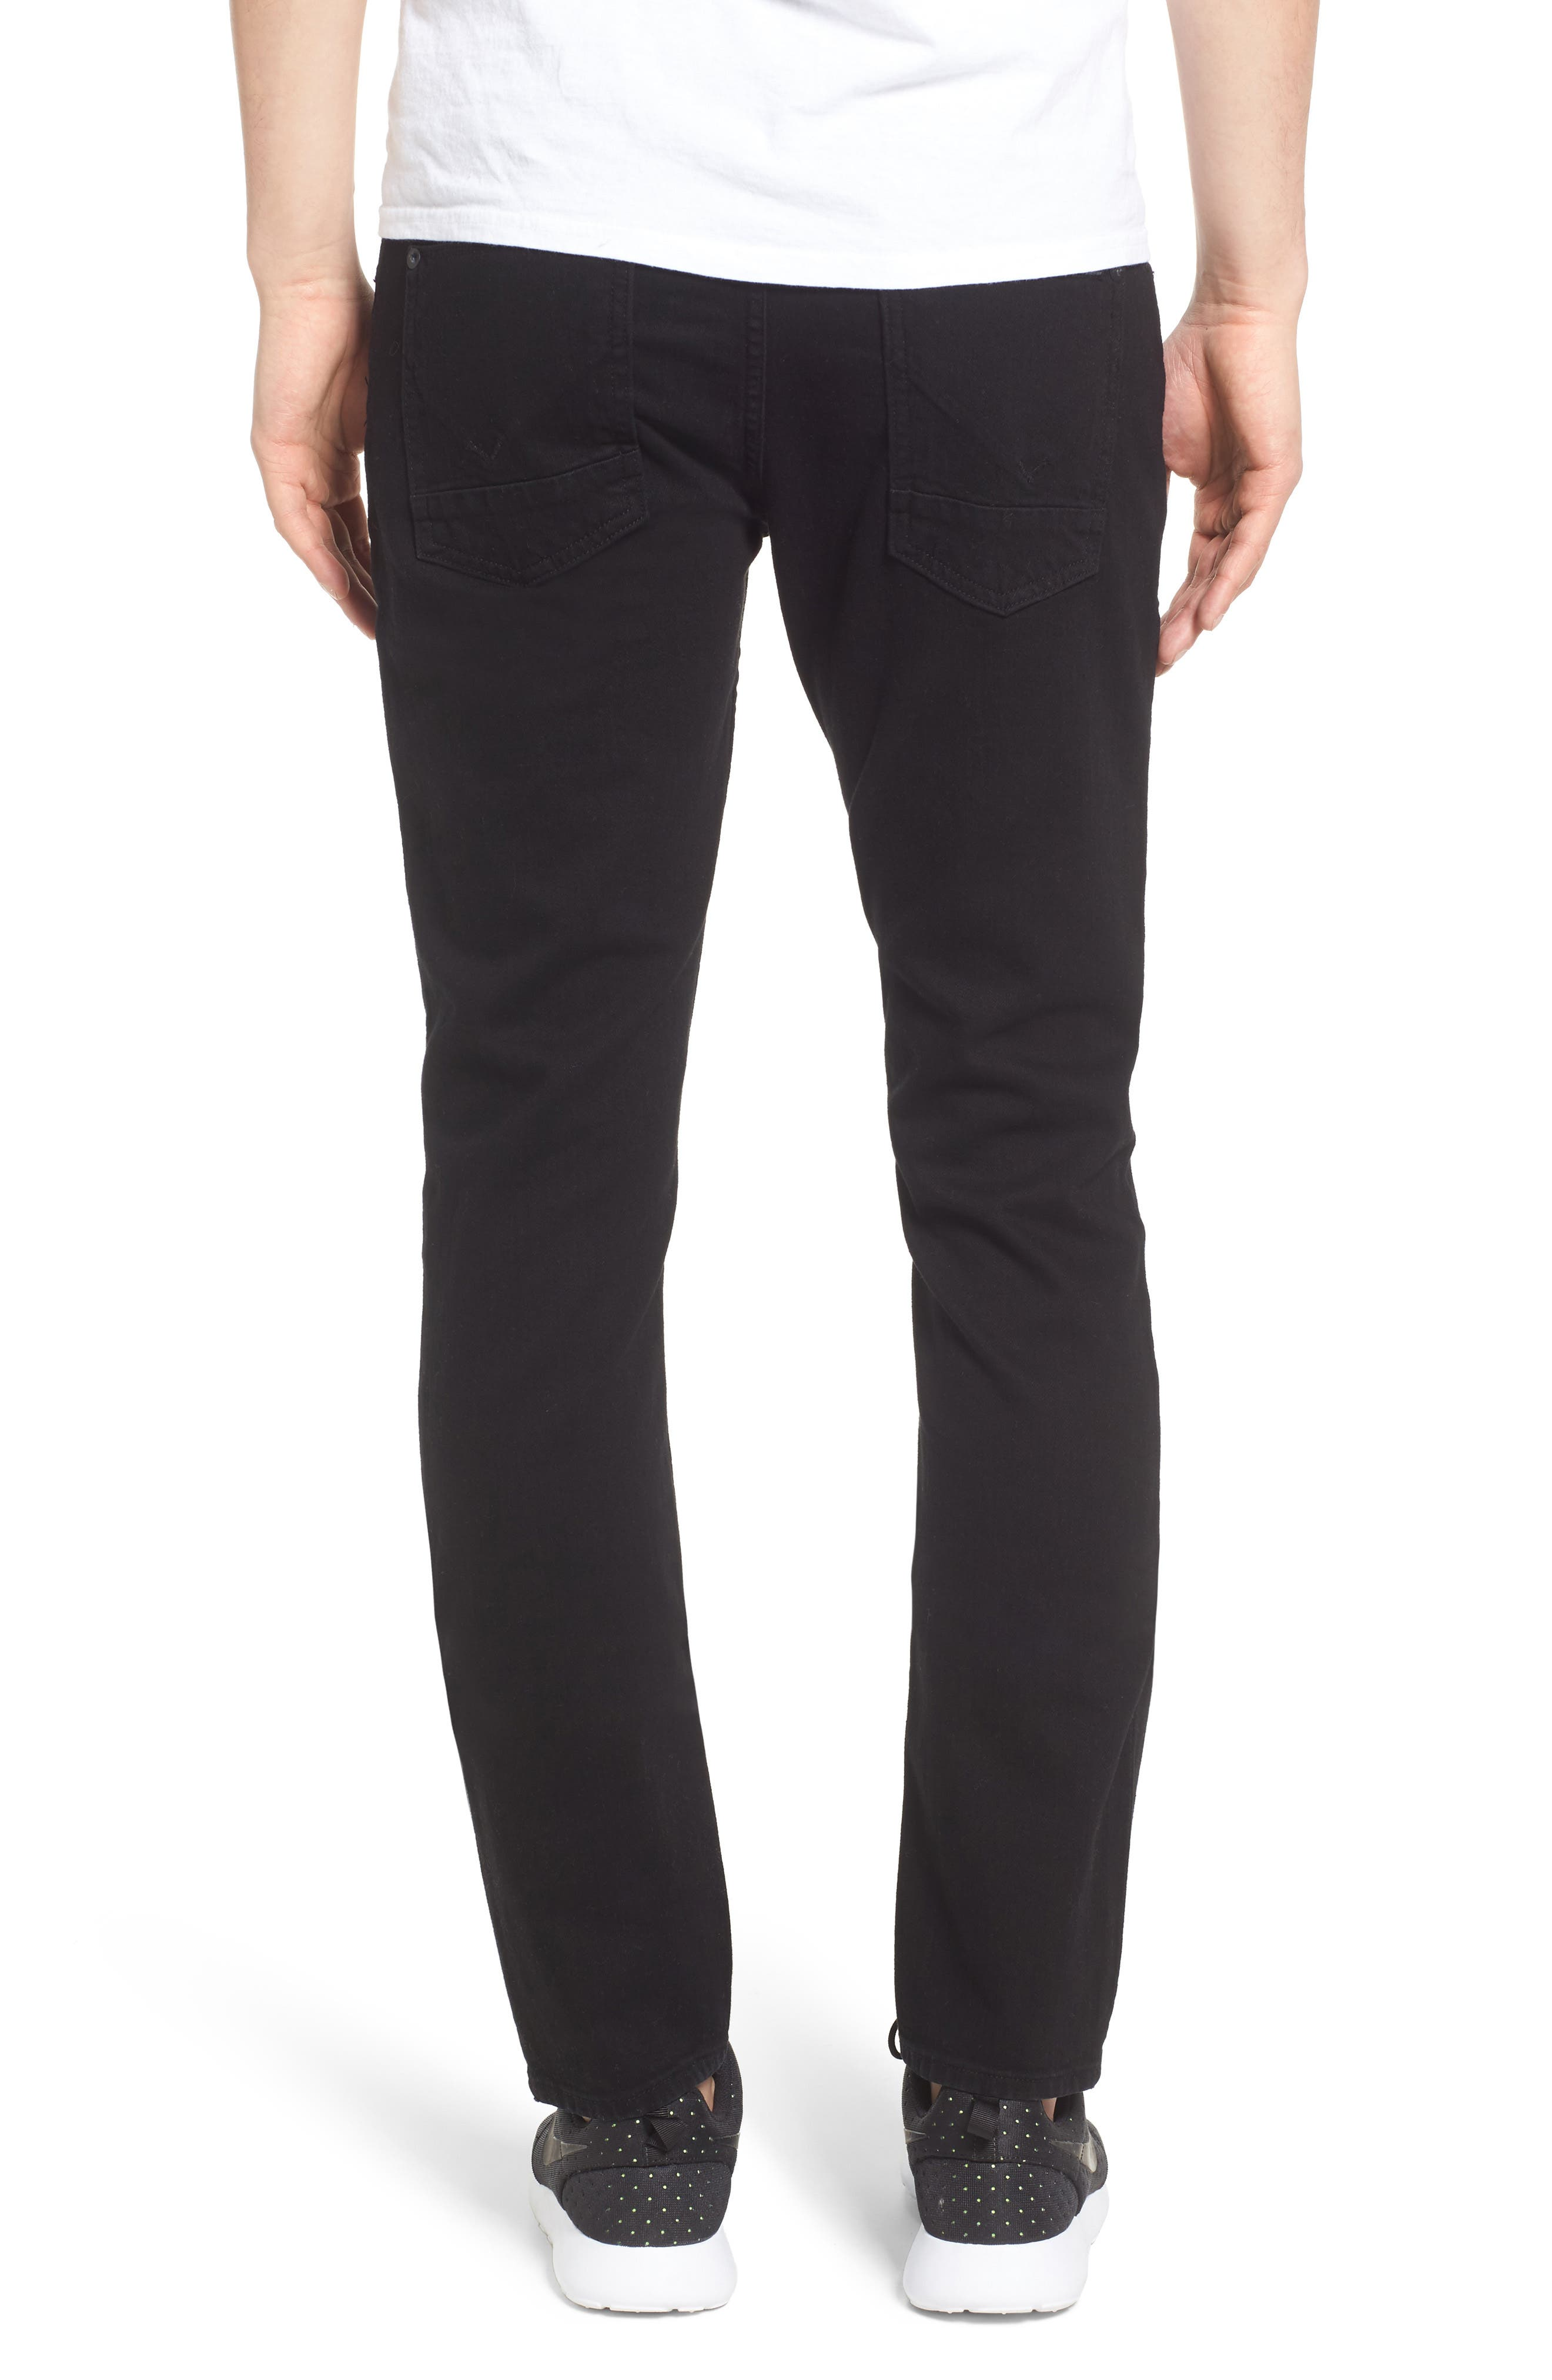 Axl Skinny Fit Jeans,                             Alternate thumbnail 2, color,                             002